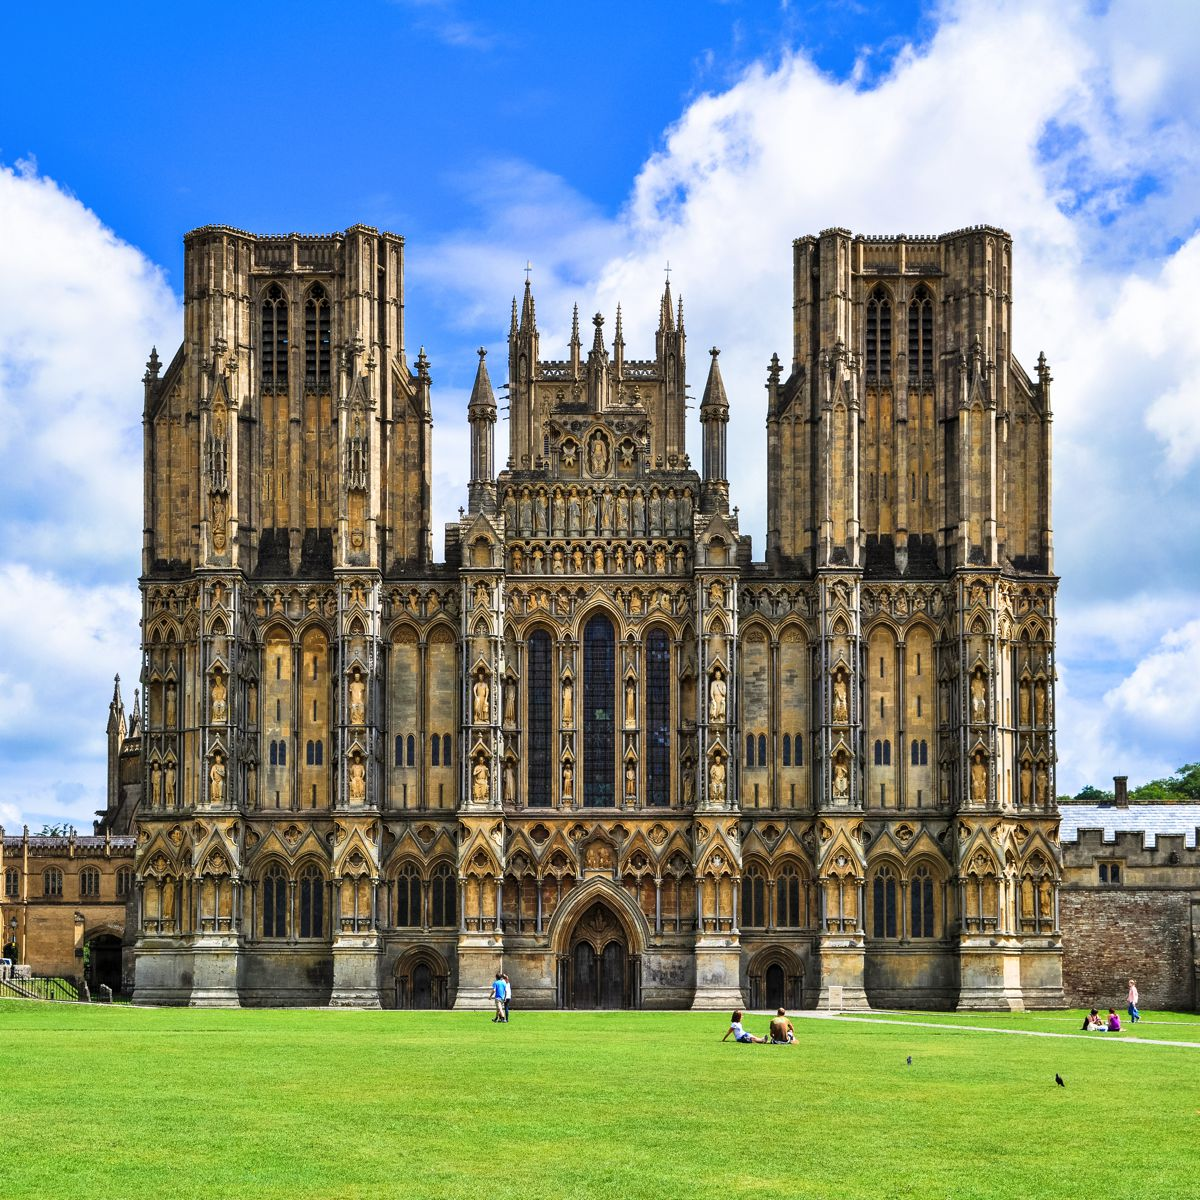 Ancient architecture: Perfect examples of Gothic architecture